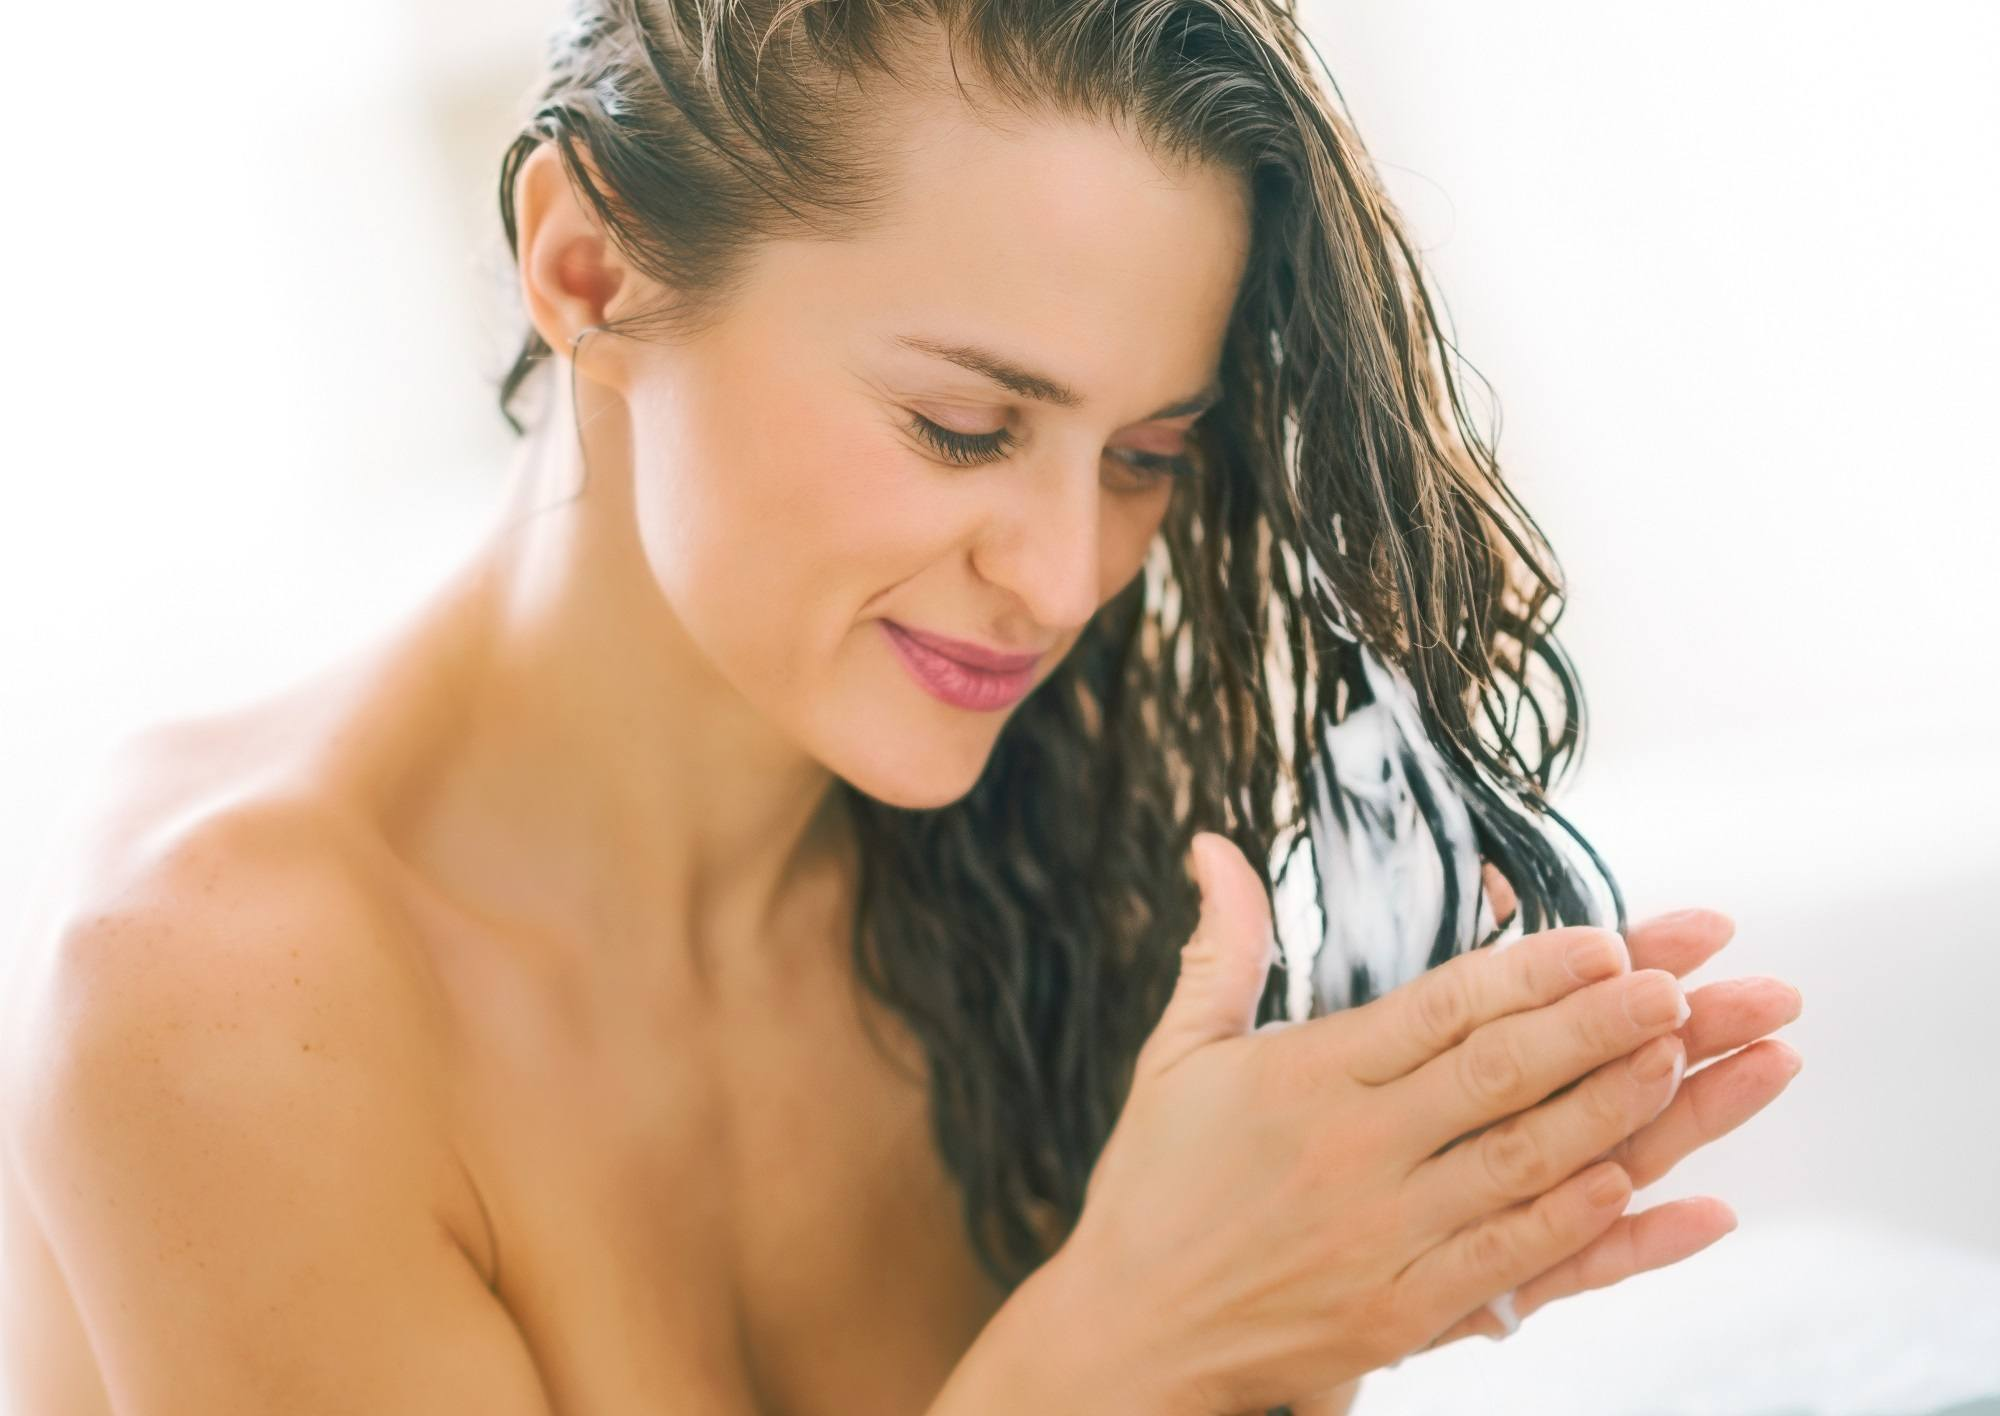 Hair caret tips for thin hair: Use the right conditioner